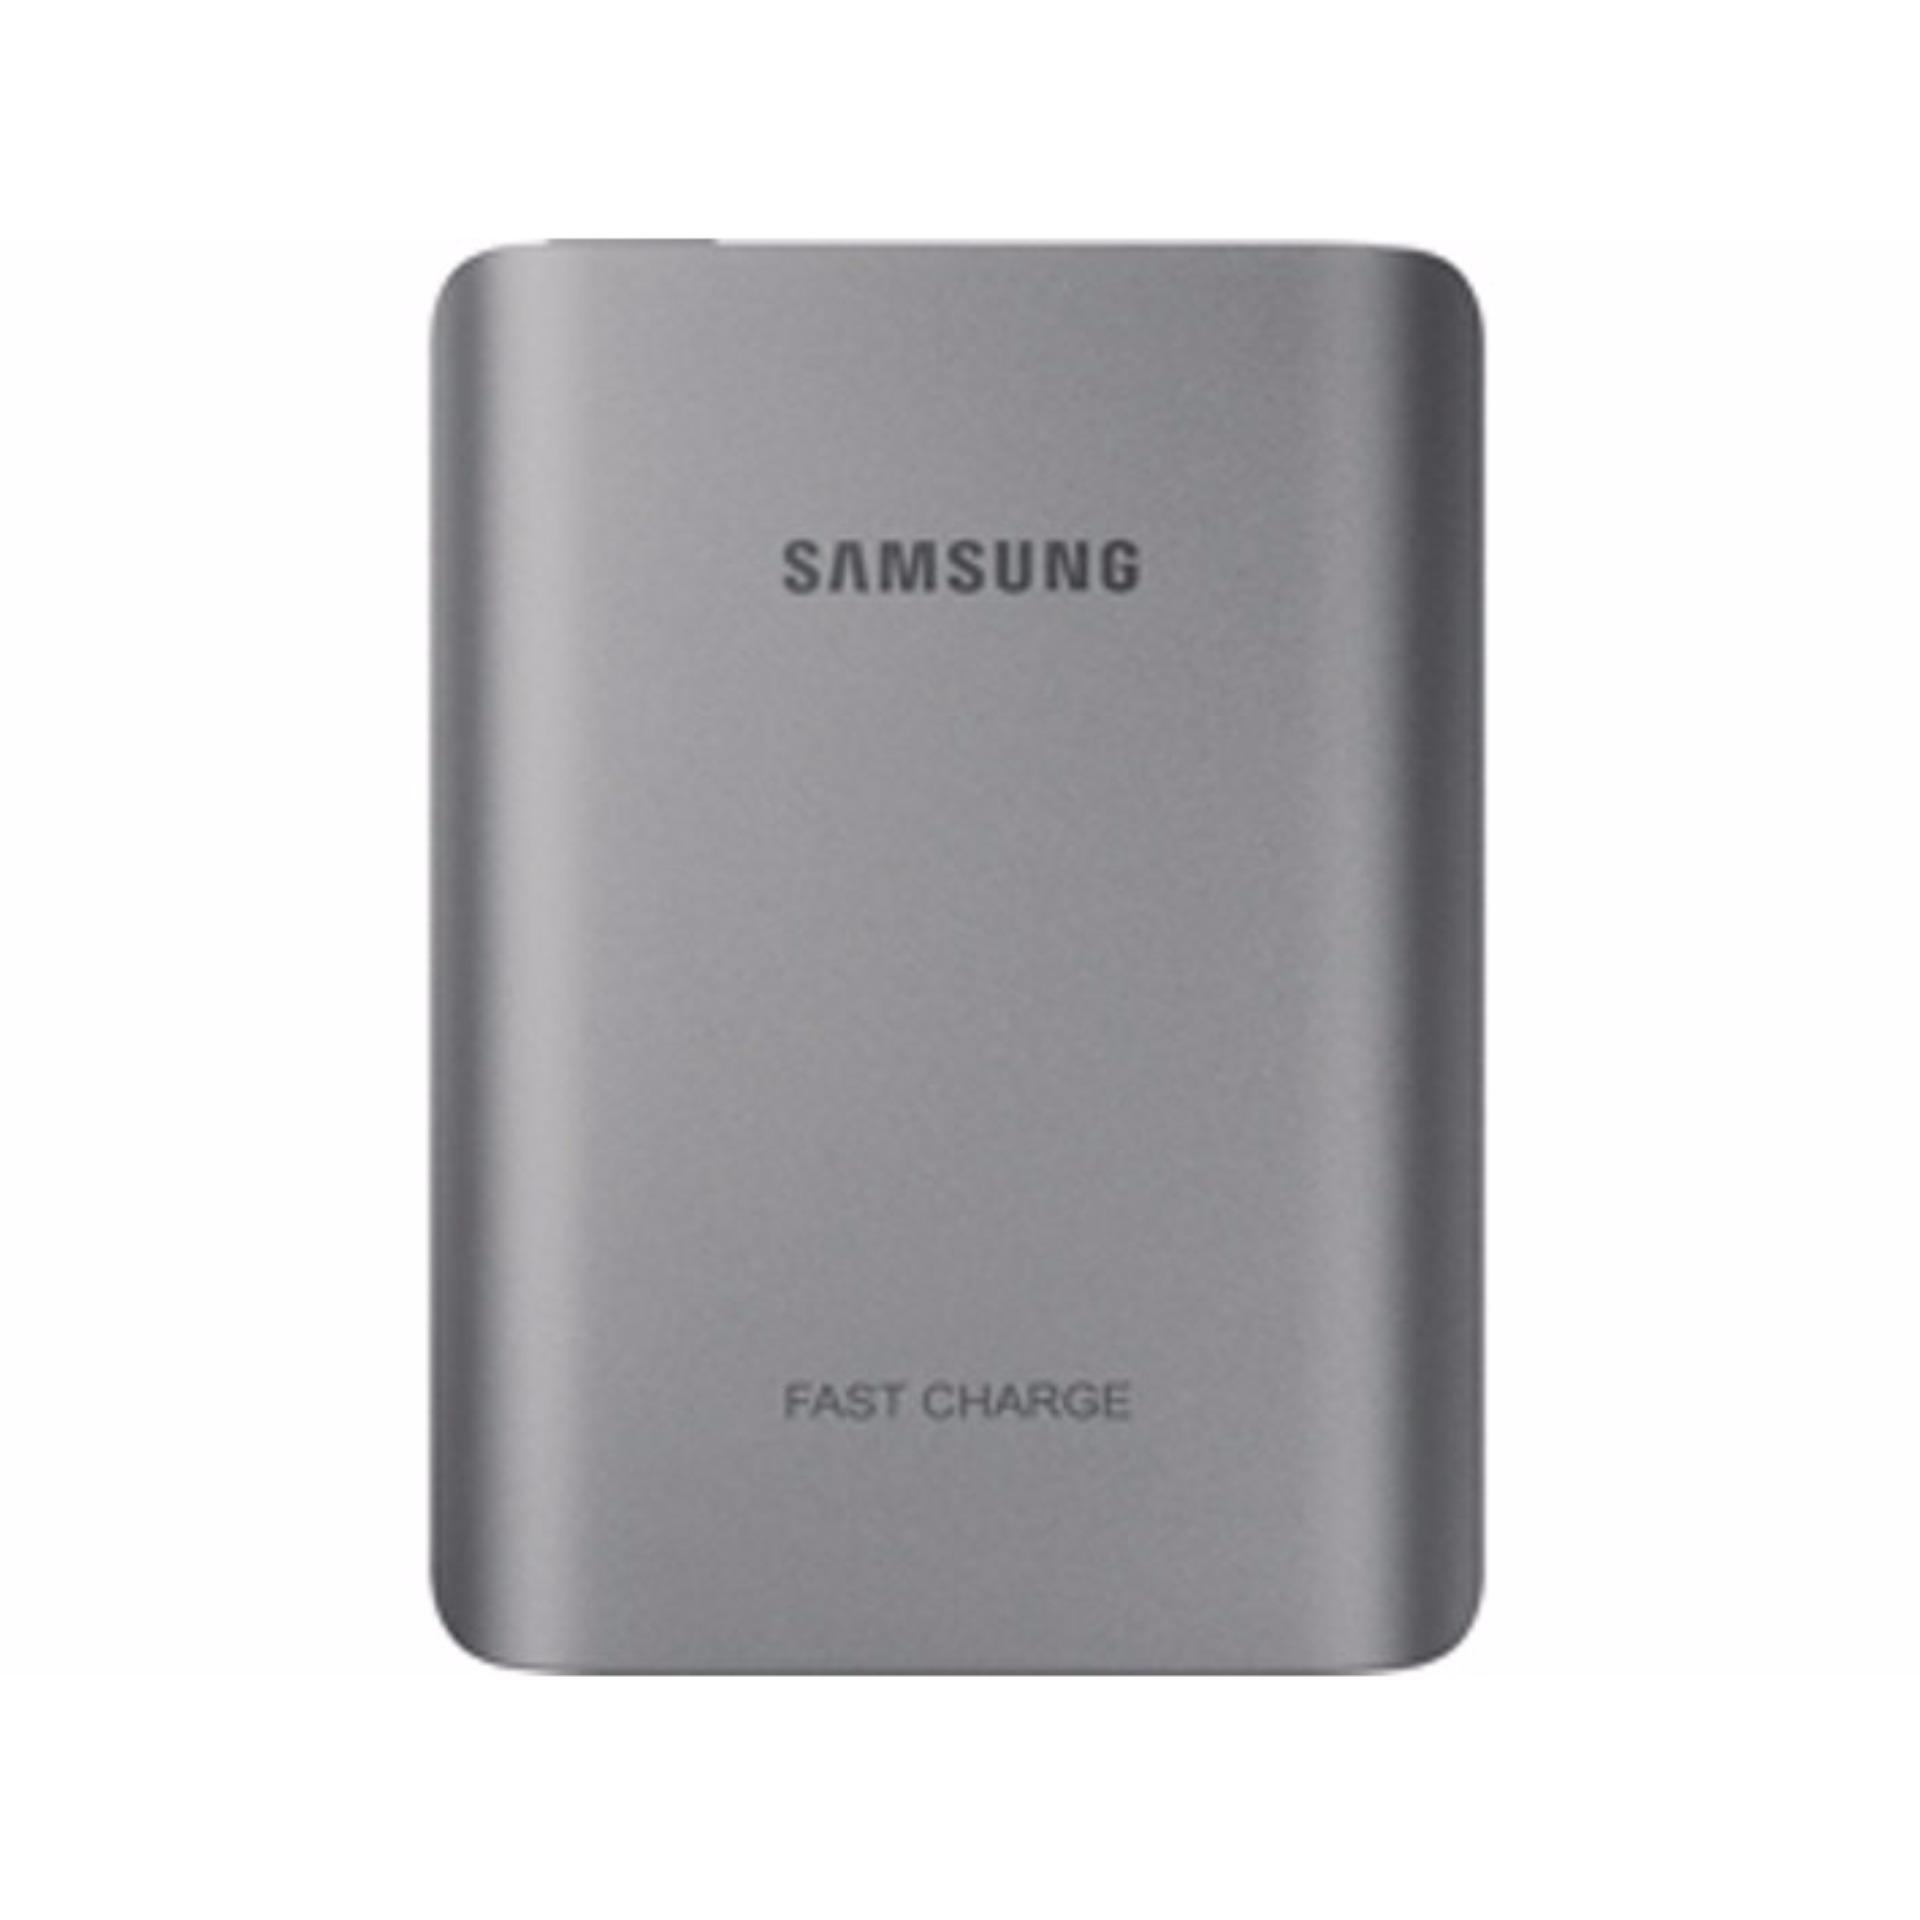 ... SAMSUNG Battery Pack 10200mAh PowerBank Fast Charger - Original ...